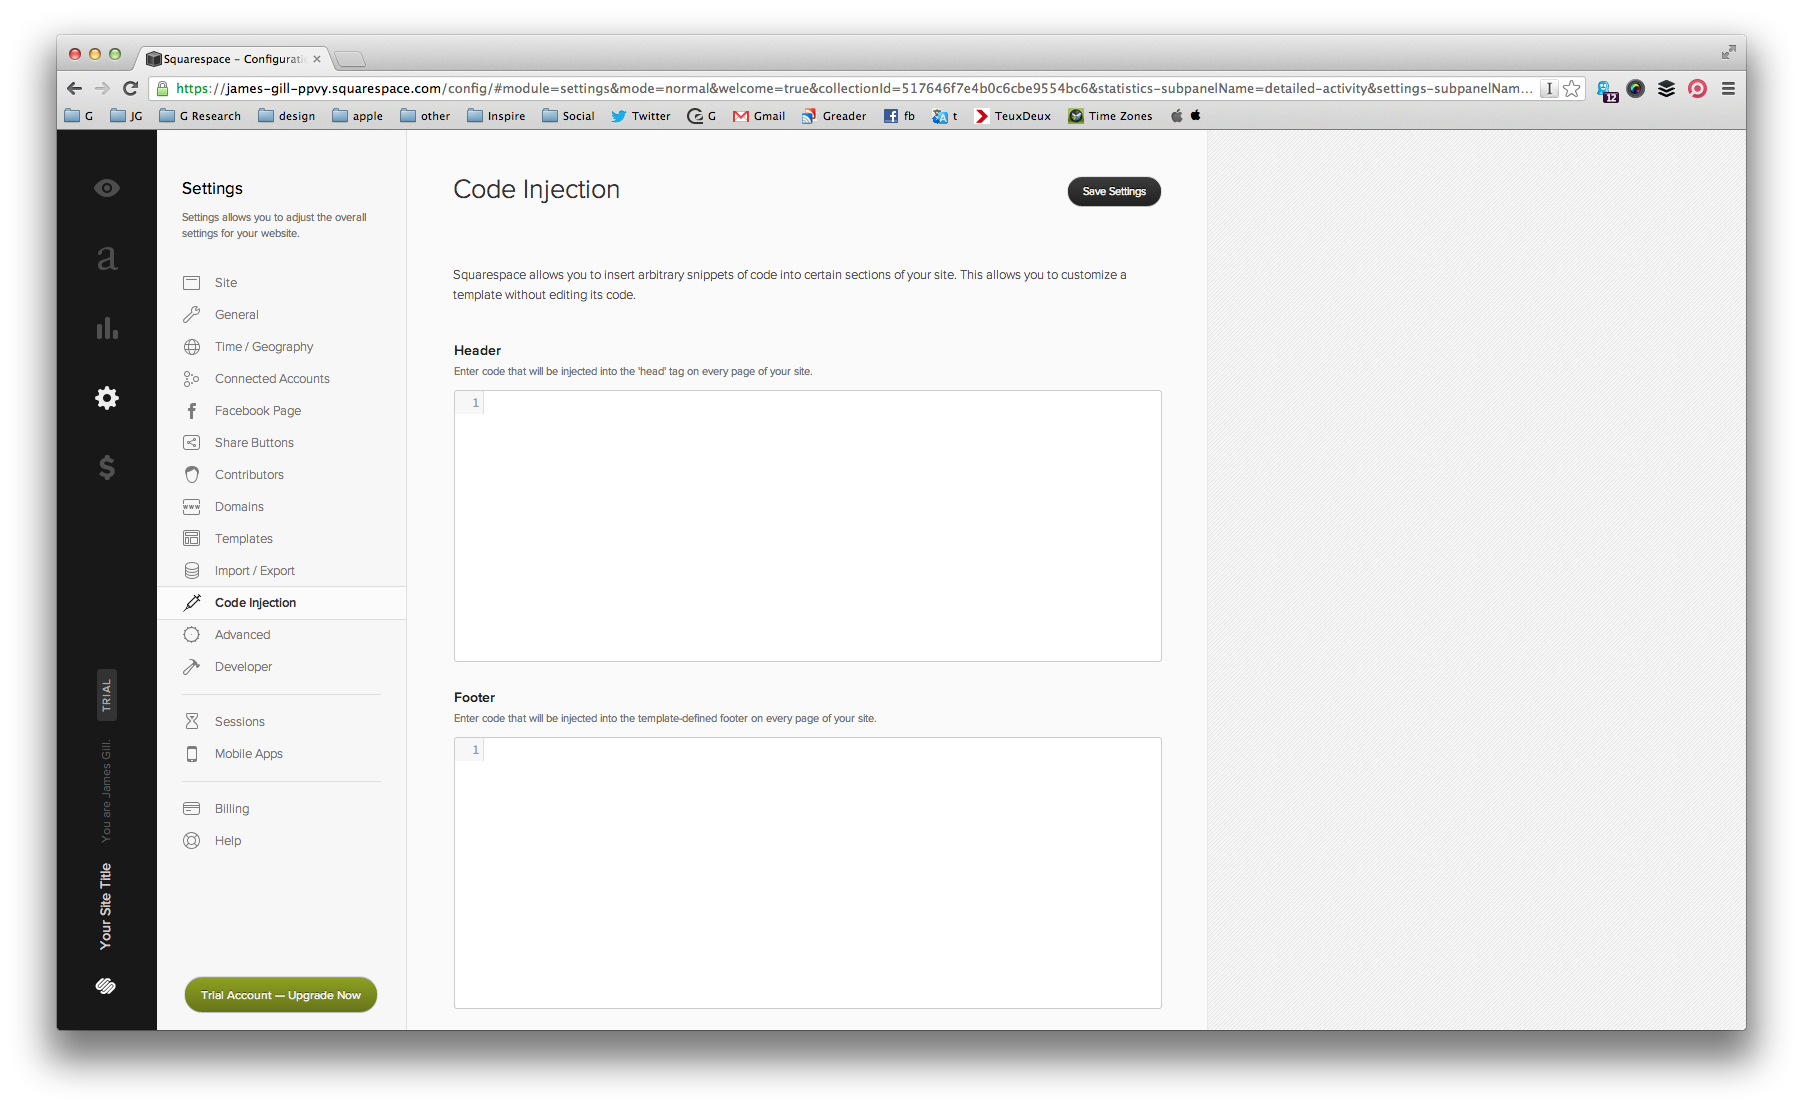 squarespace_codeinjection